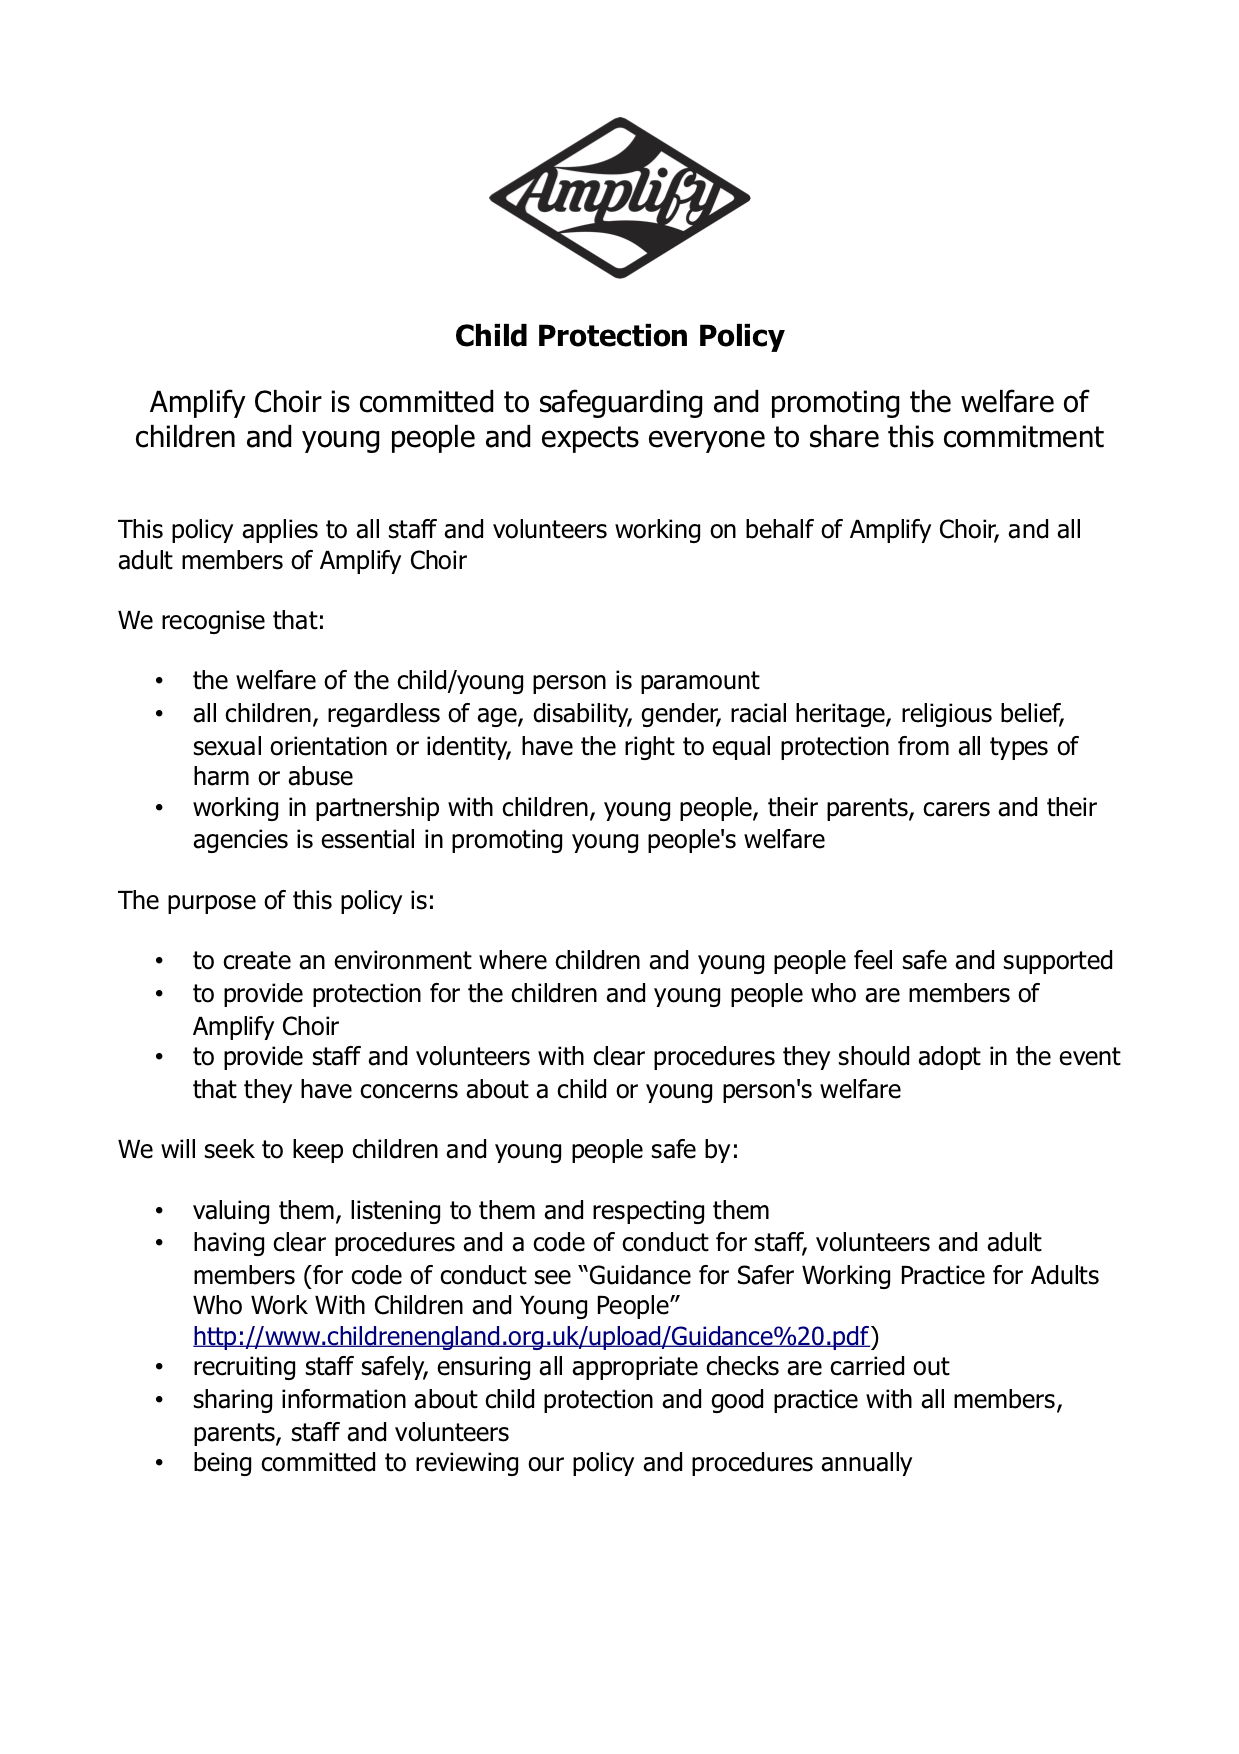 Child Protection Statement and Policy.png